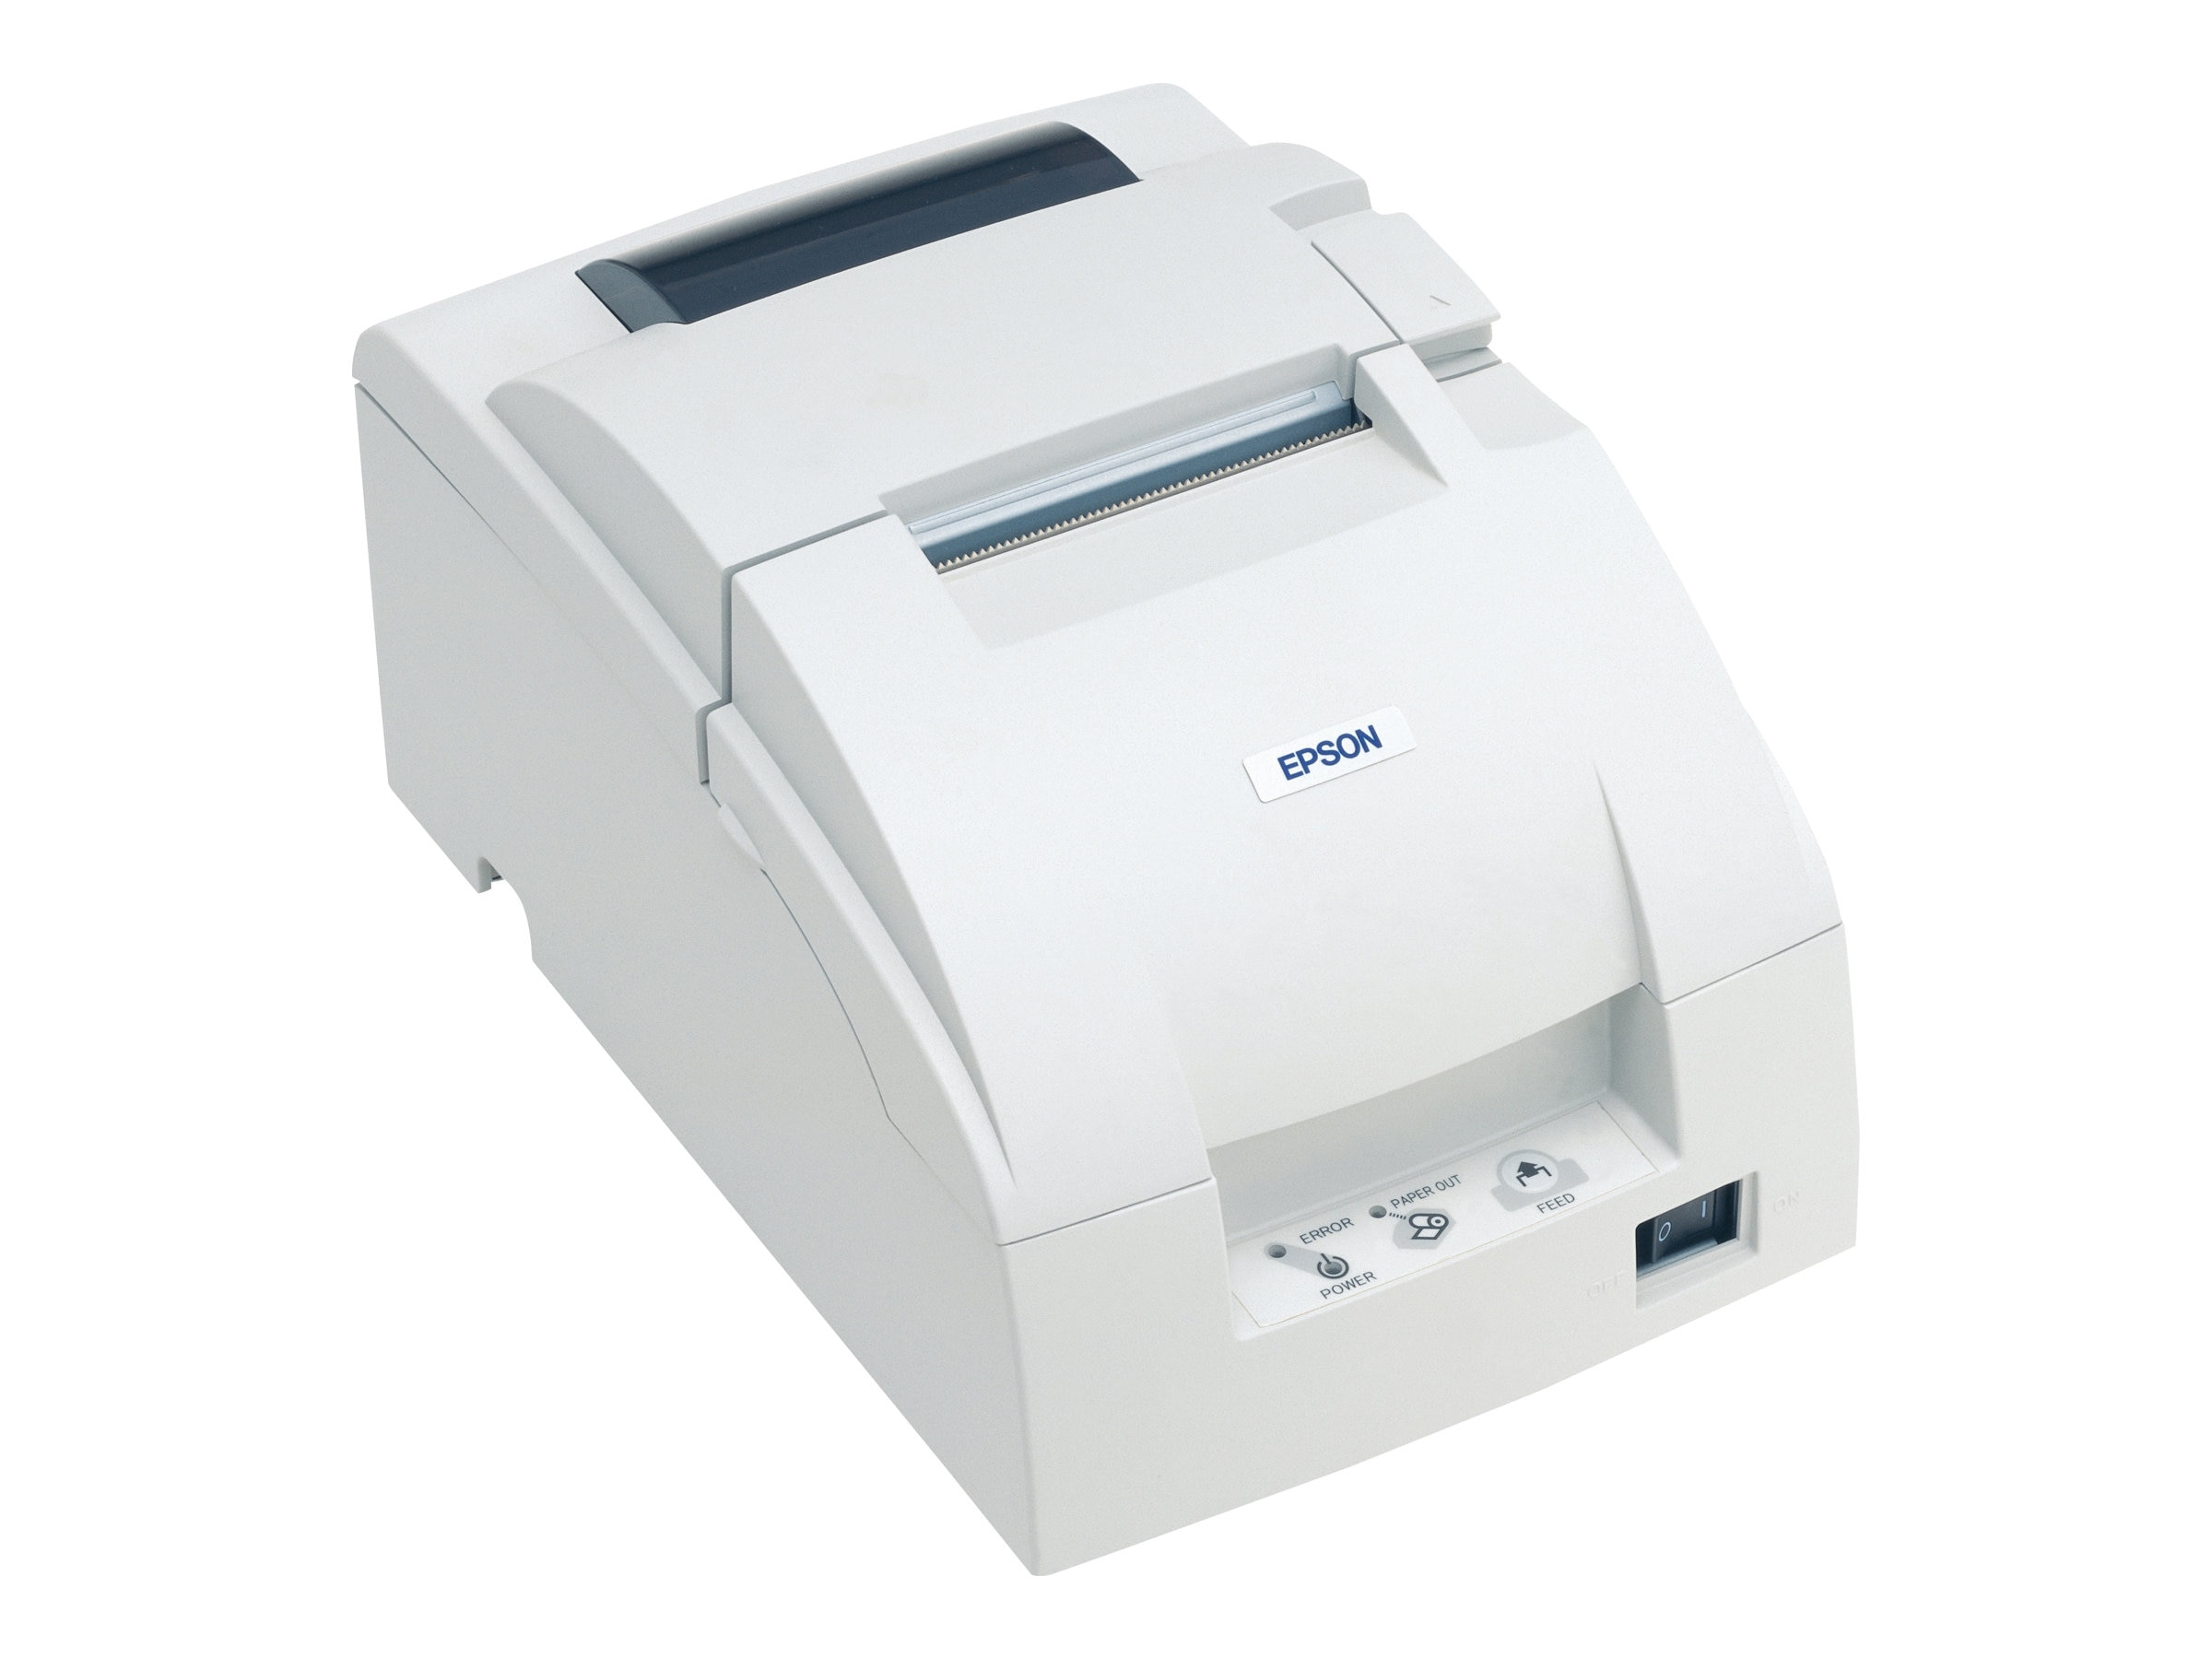 Epson TM-U220B Receipt Printer, C31C514A8721, 7744555, Printers - POS Receipt